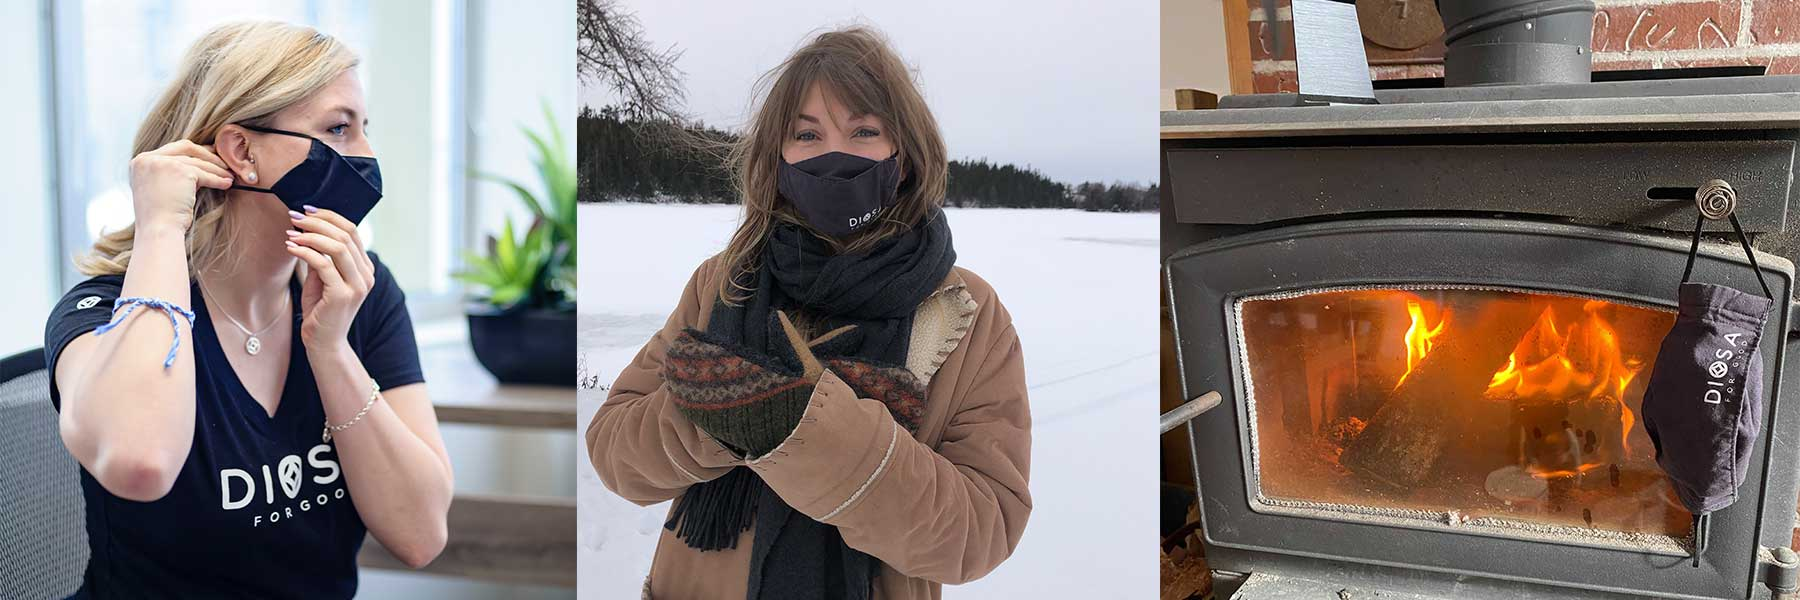 This image tells a story in 3 parts: 1. Putting on a DIOSA 3D origami-inspired breathable mask. 2. Going outside for snowy adventures. 3. Warming up and drying the mask in front of a wood stove.